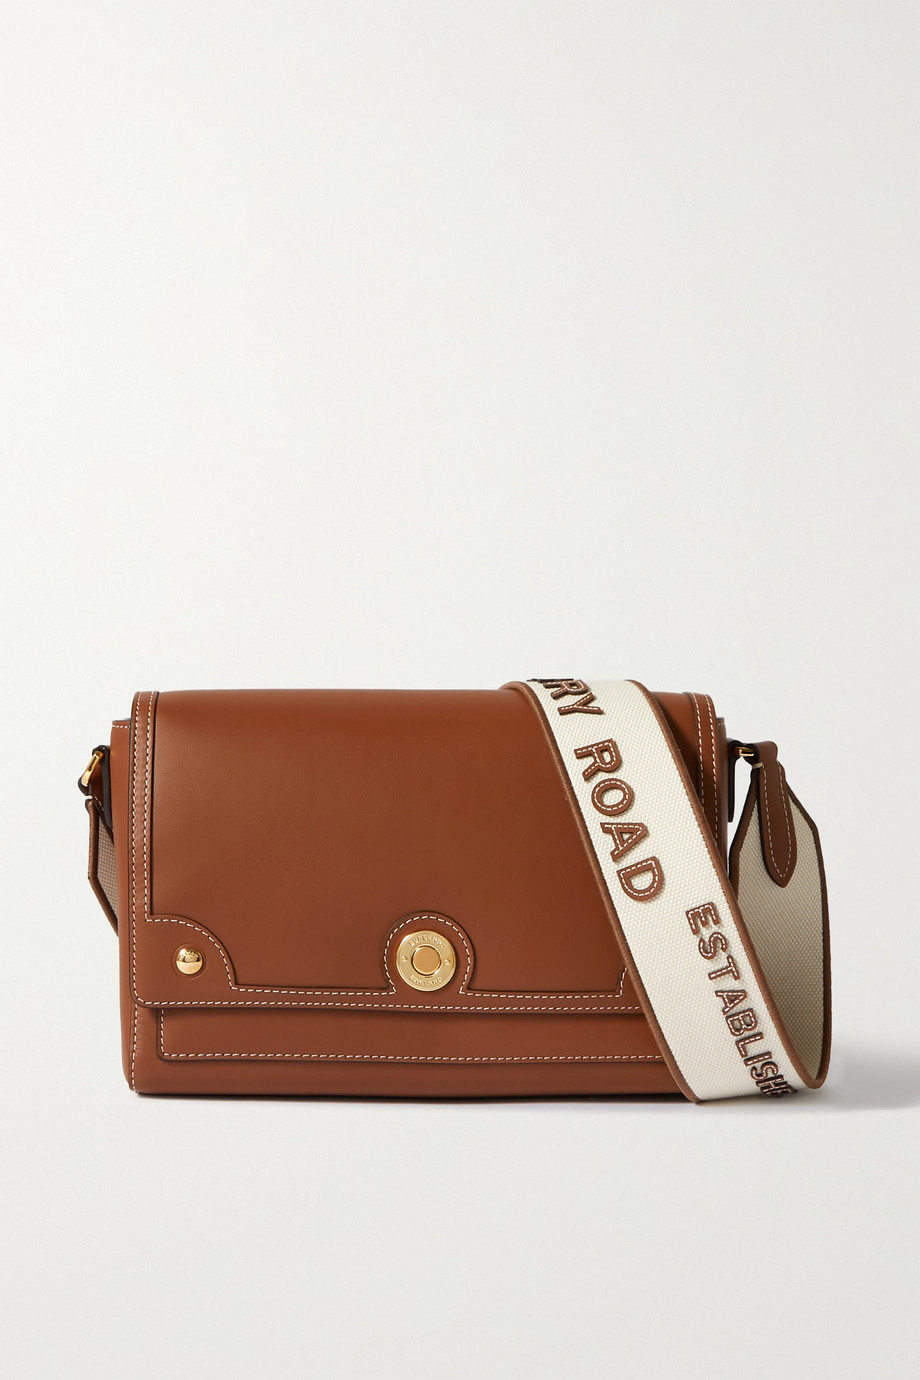 Burberry Small canvas-trimmed leather shoulder bag